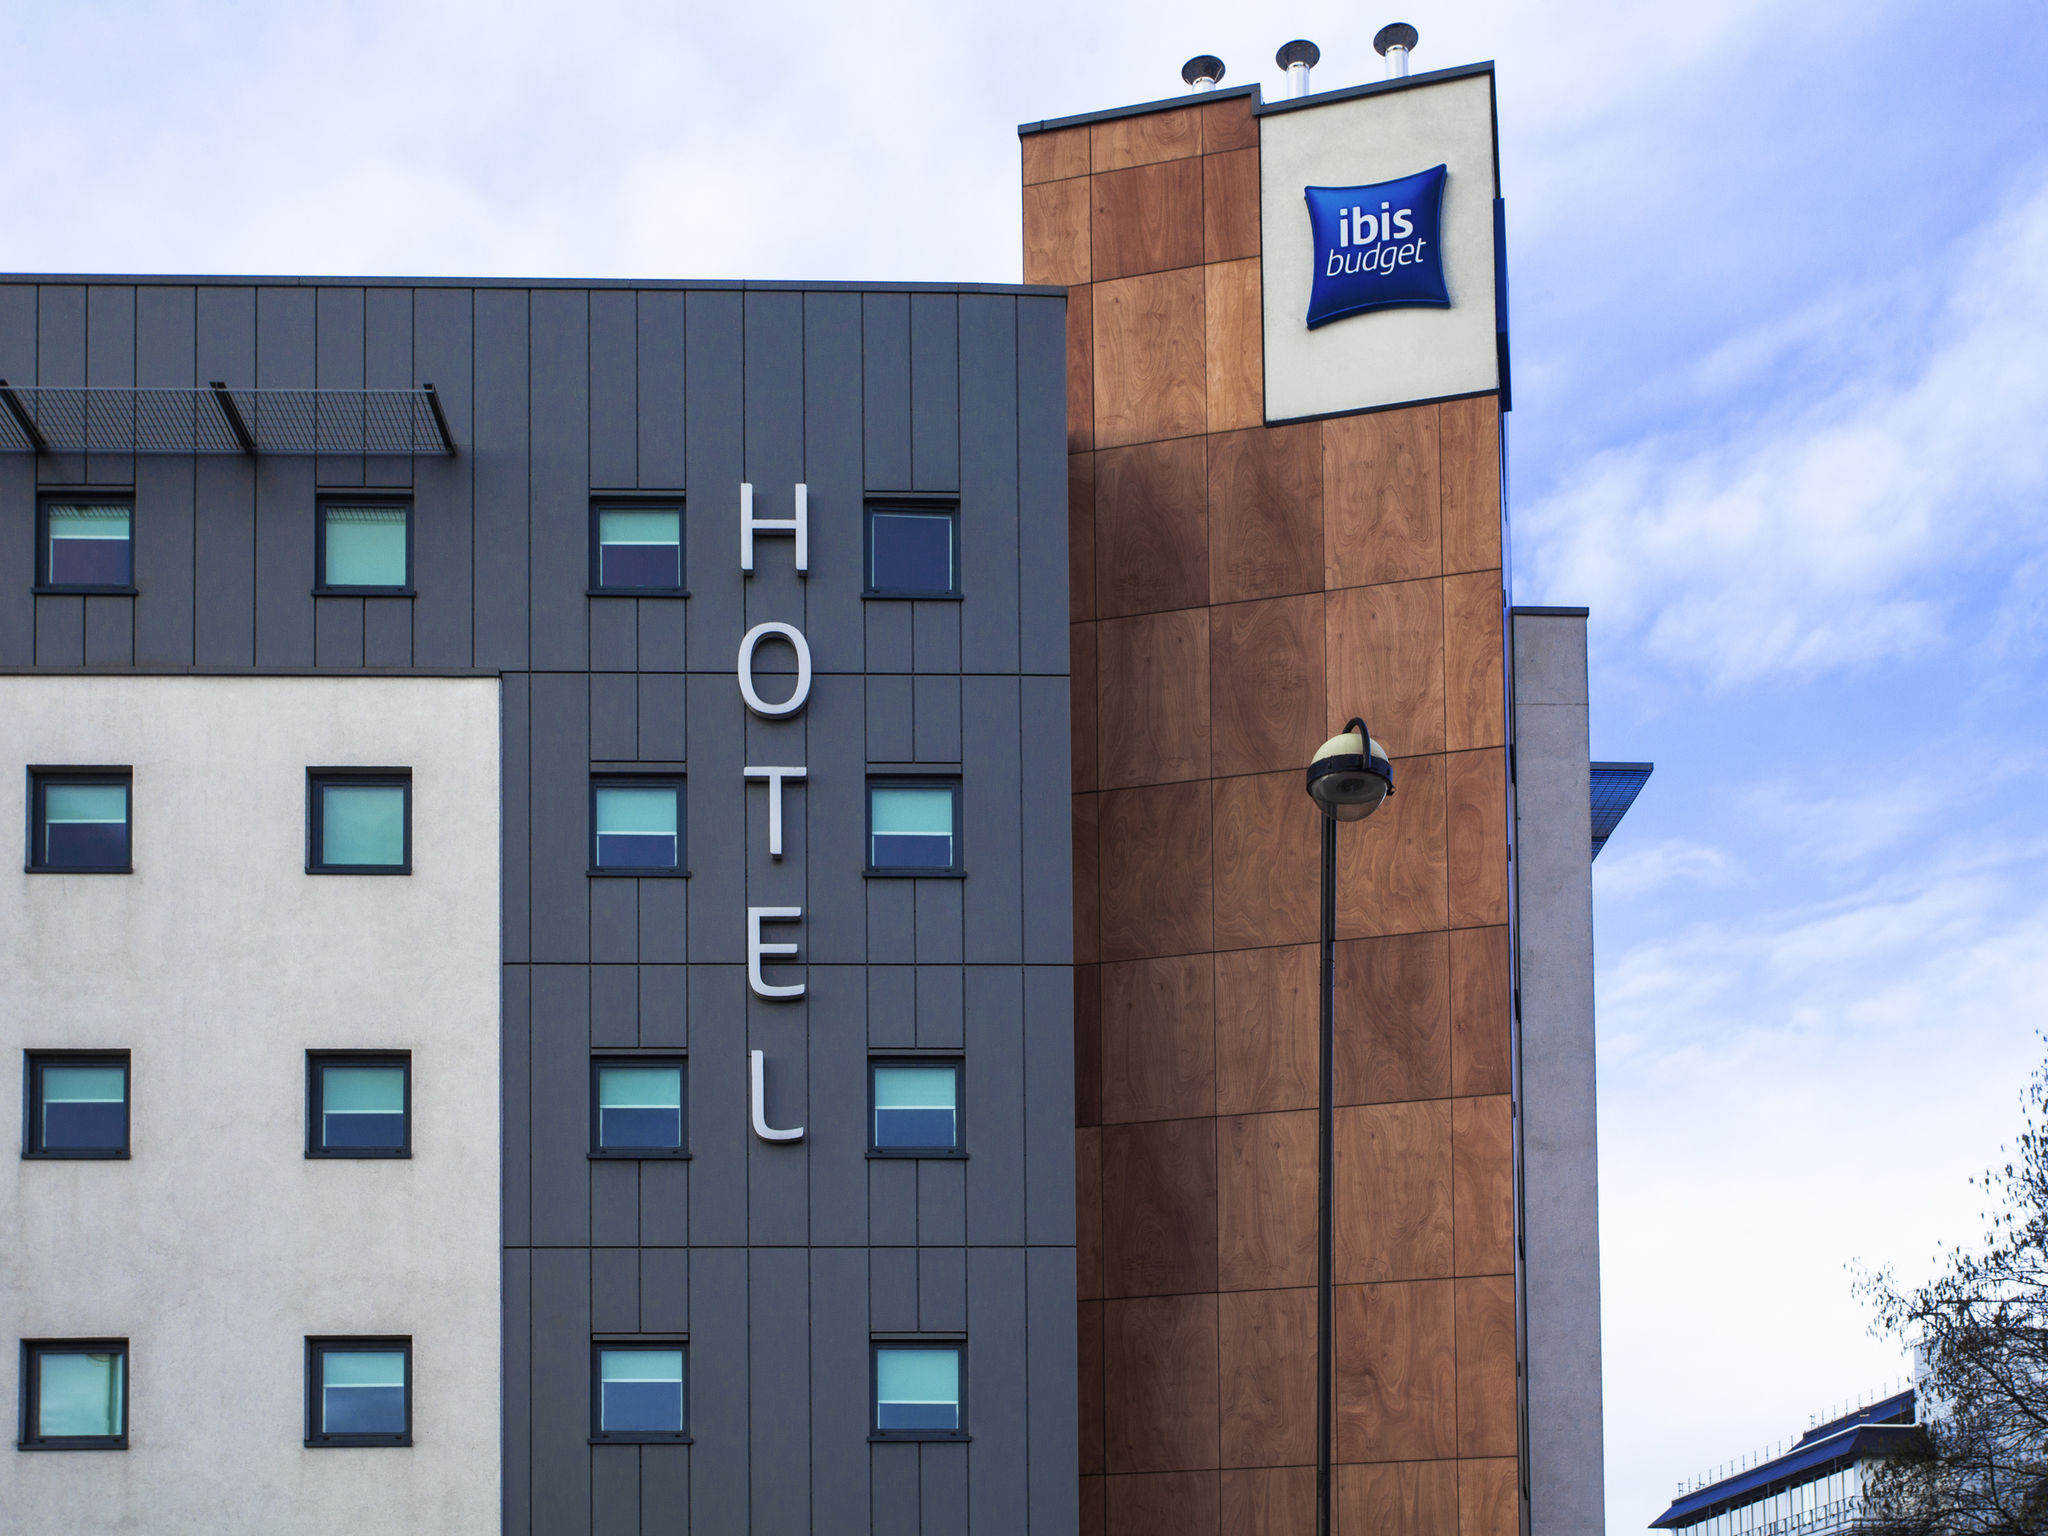 Hotel – ibis budget Londres Hounslow